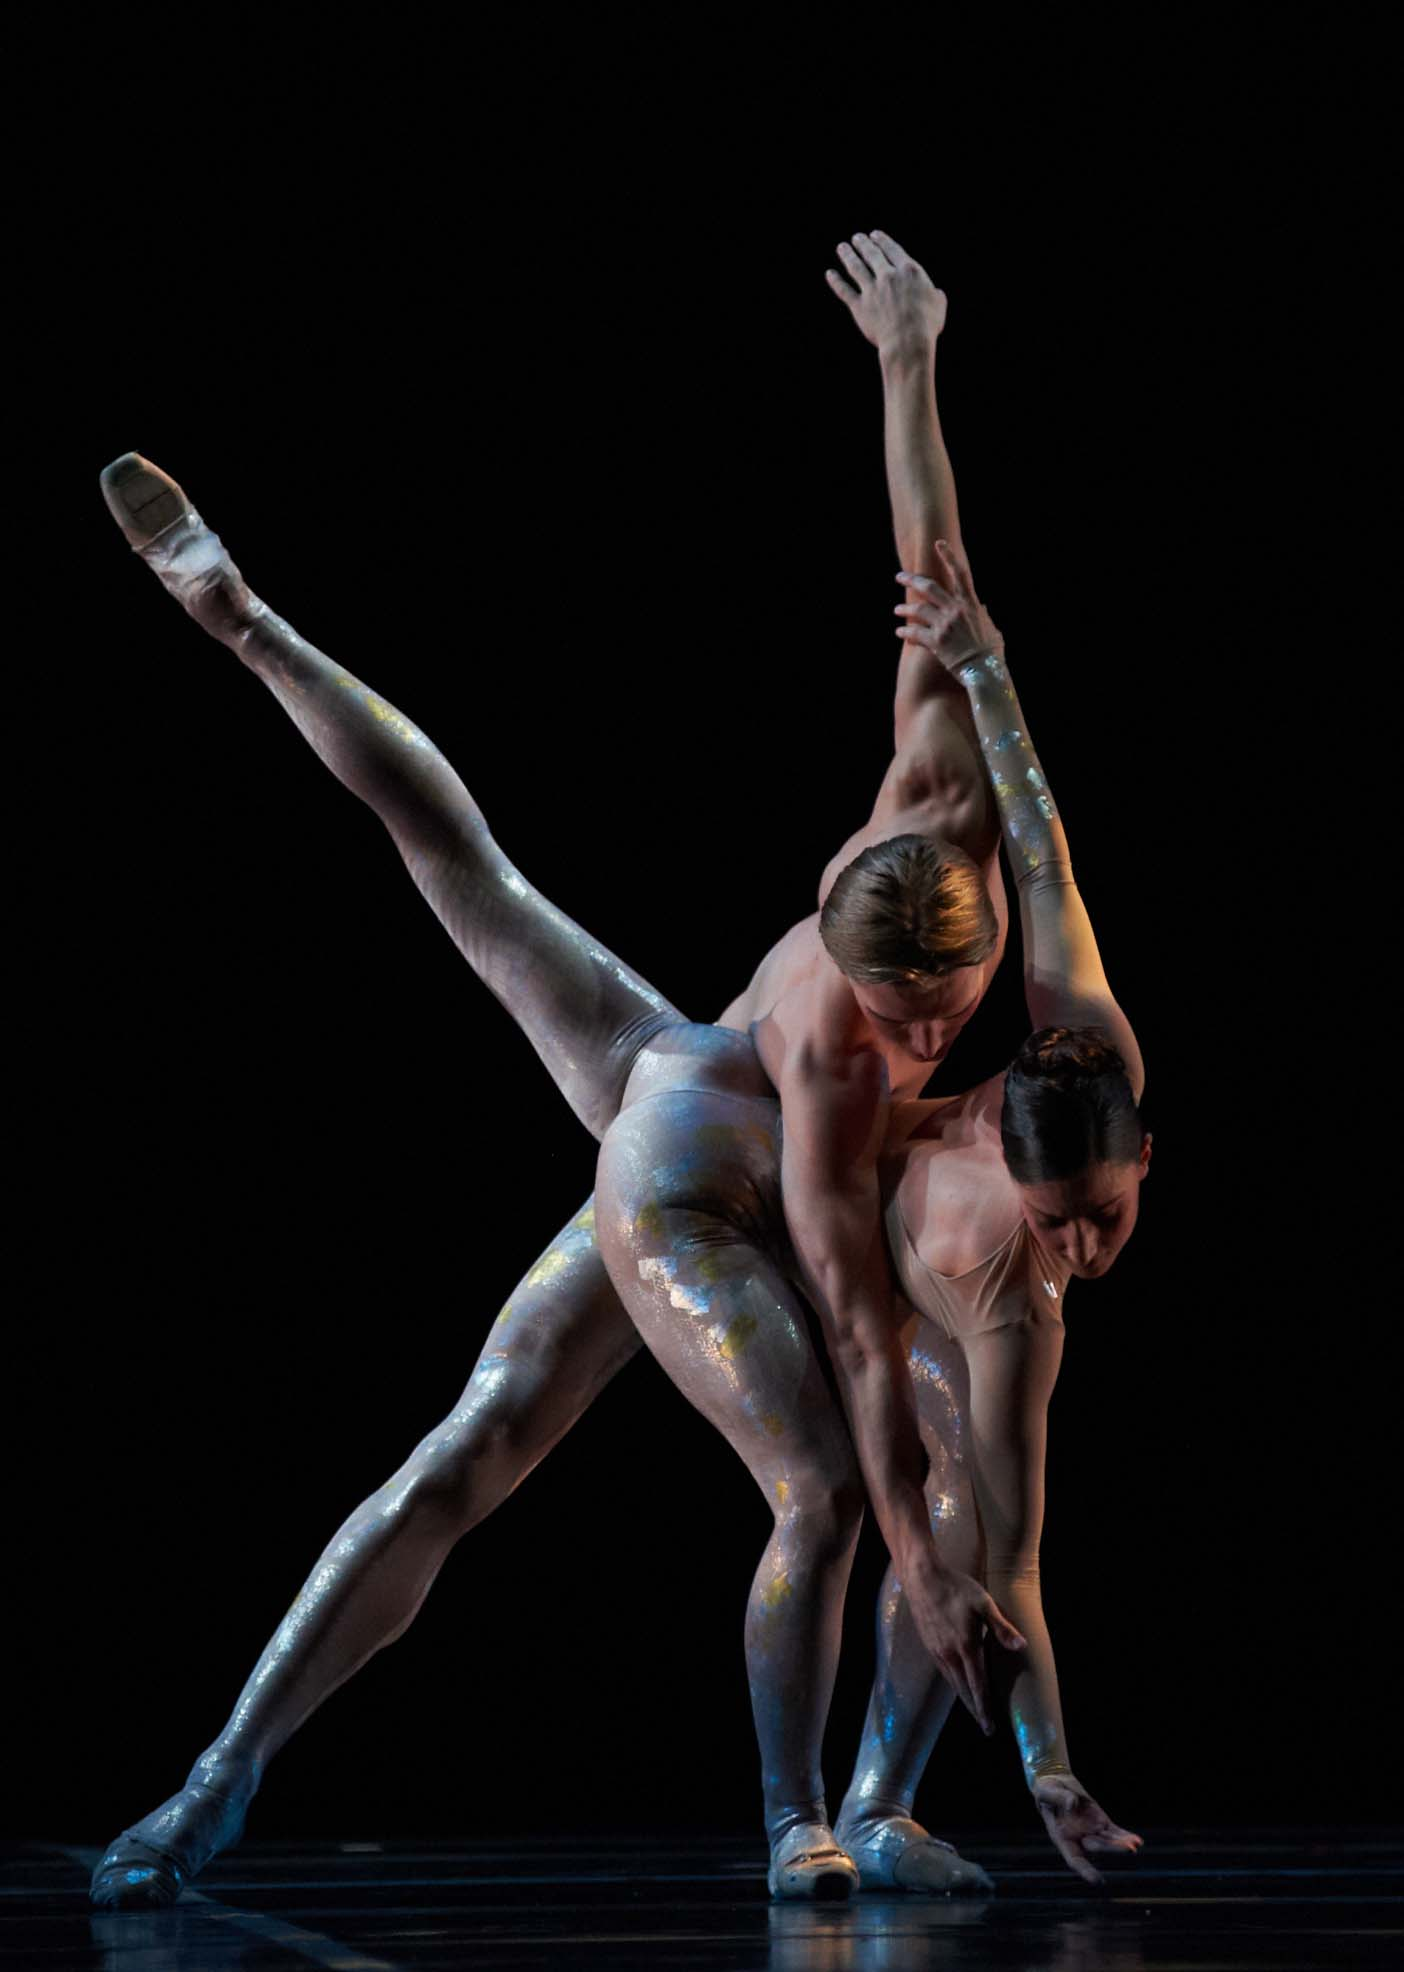 Amanda Green and Tristan Dobrowney in Luminous. Photo by Bruce Monk